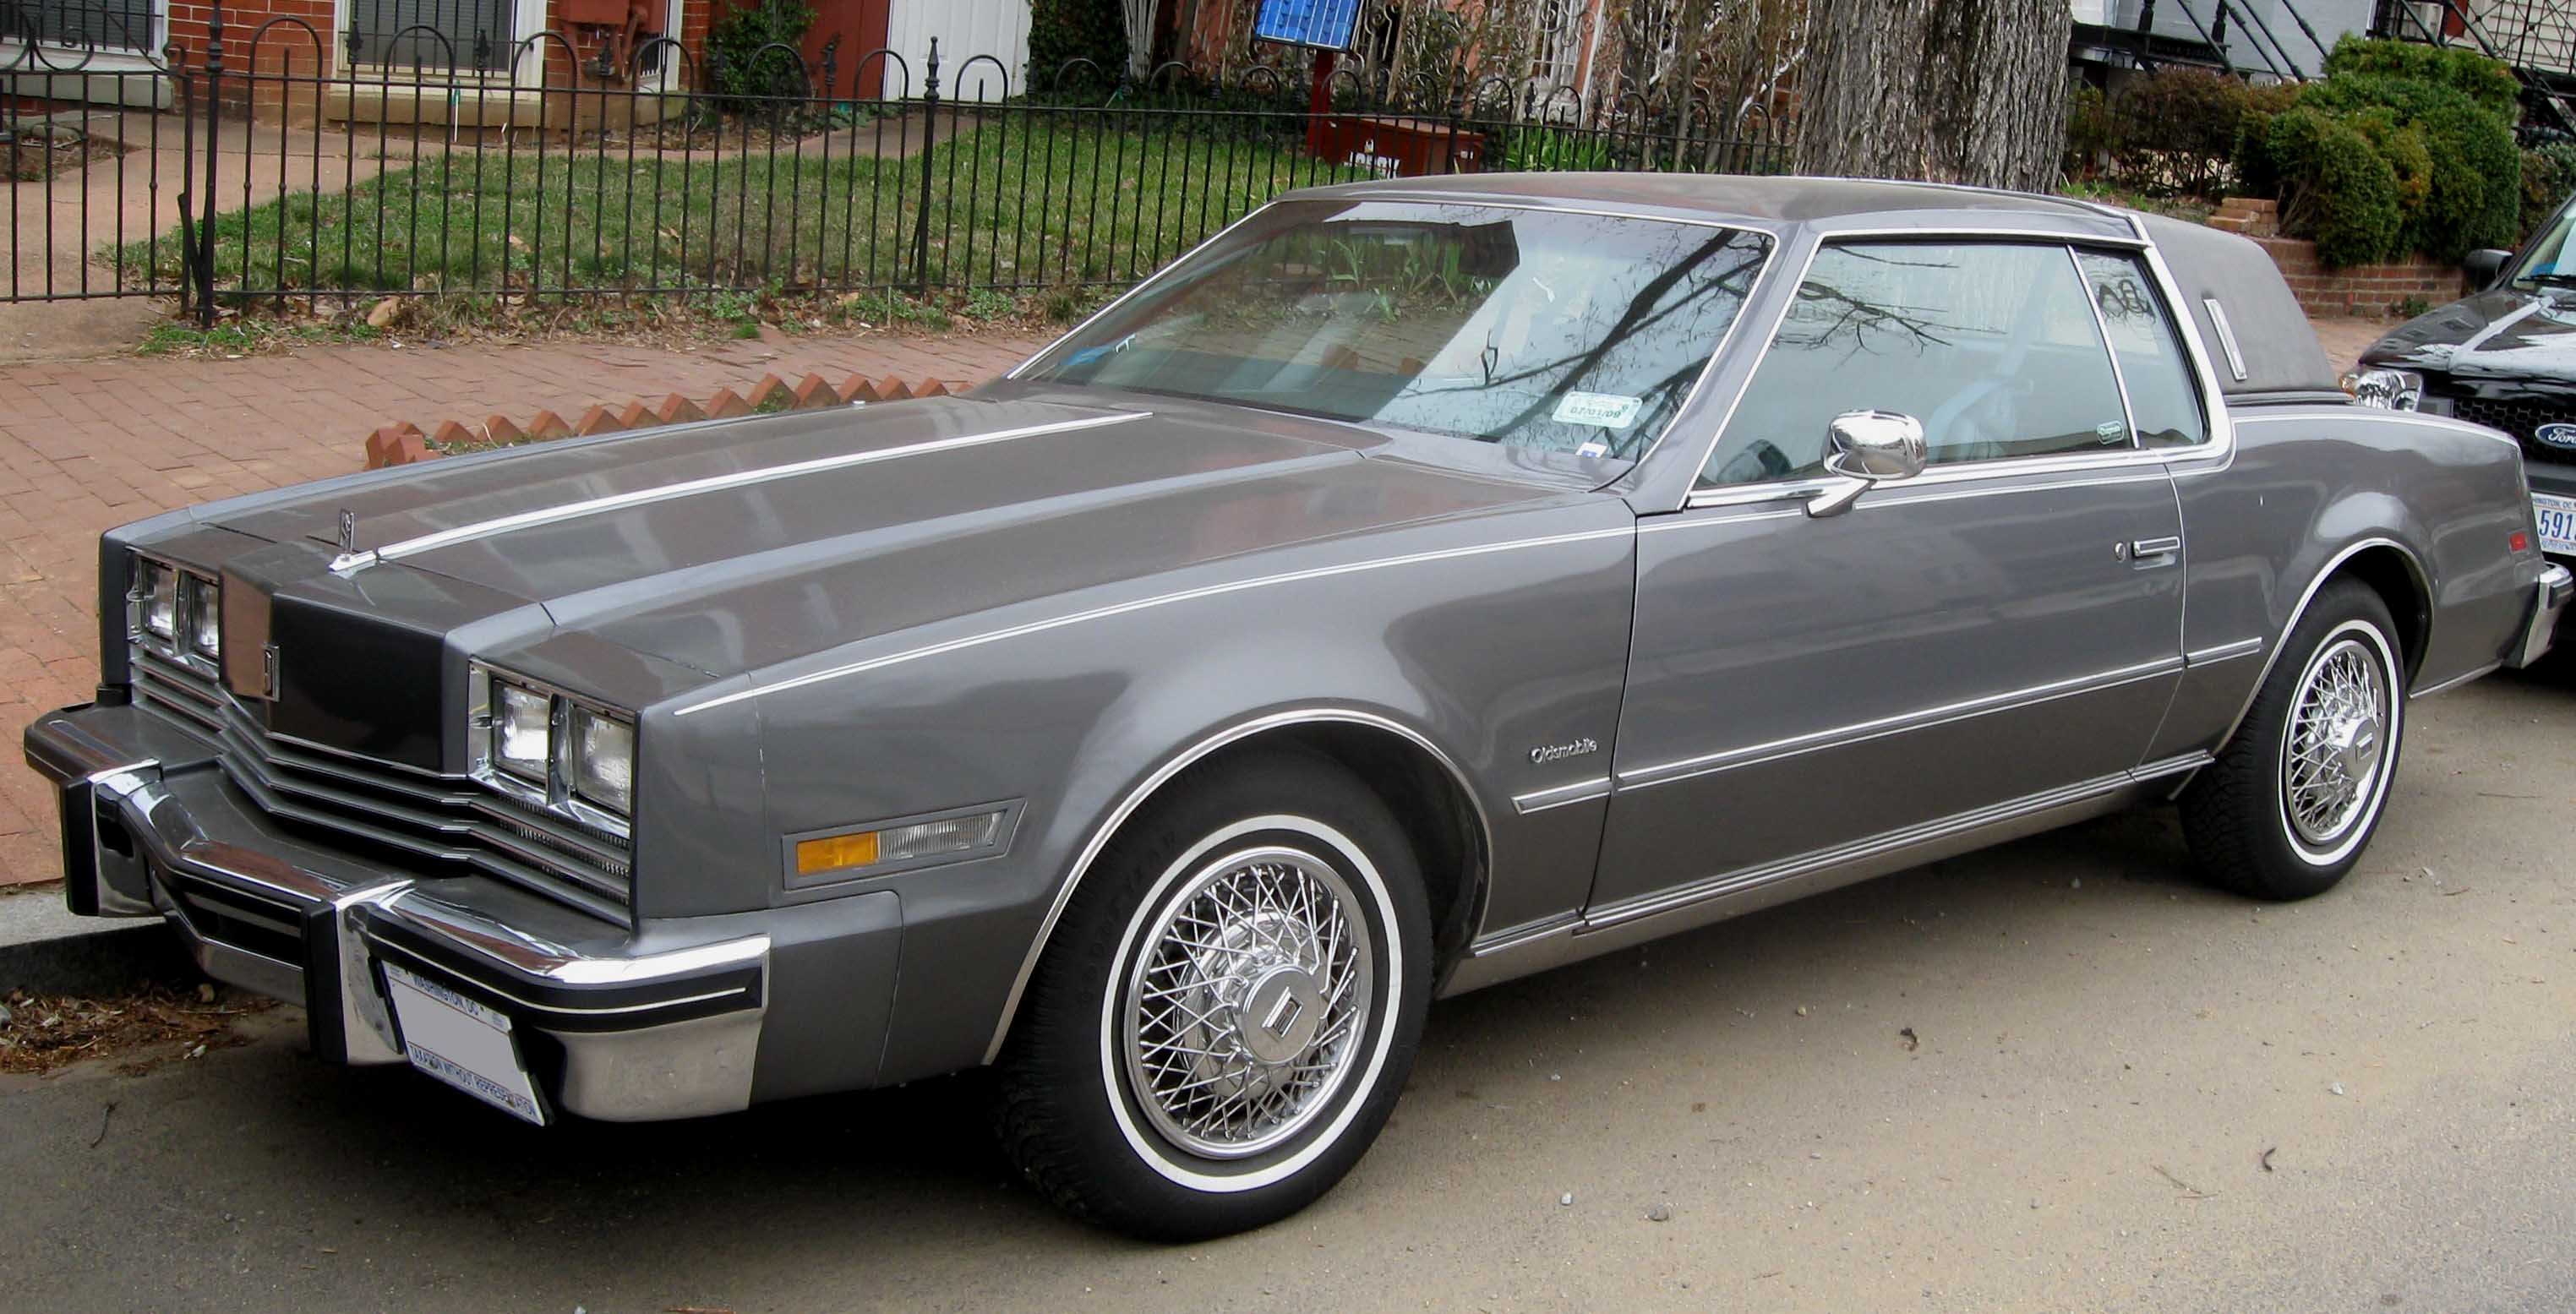 File:3rd Oldsmobile Toronado.jpg - Wikipedia, the free encyclopedia